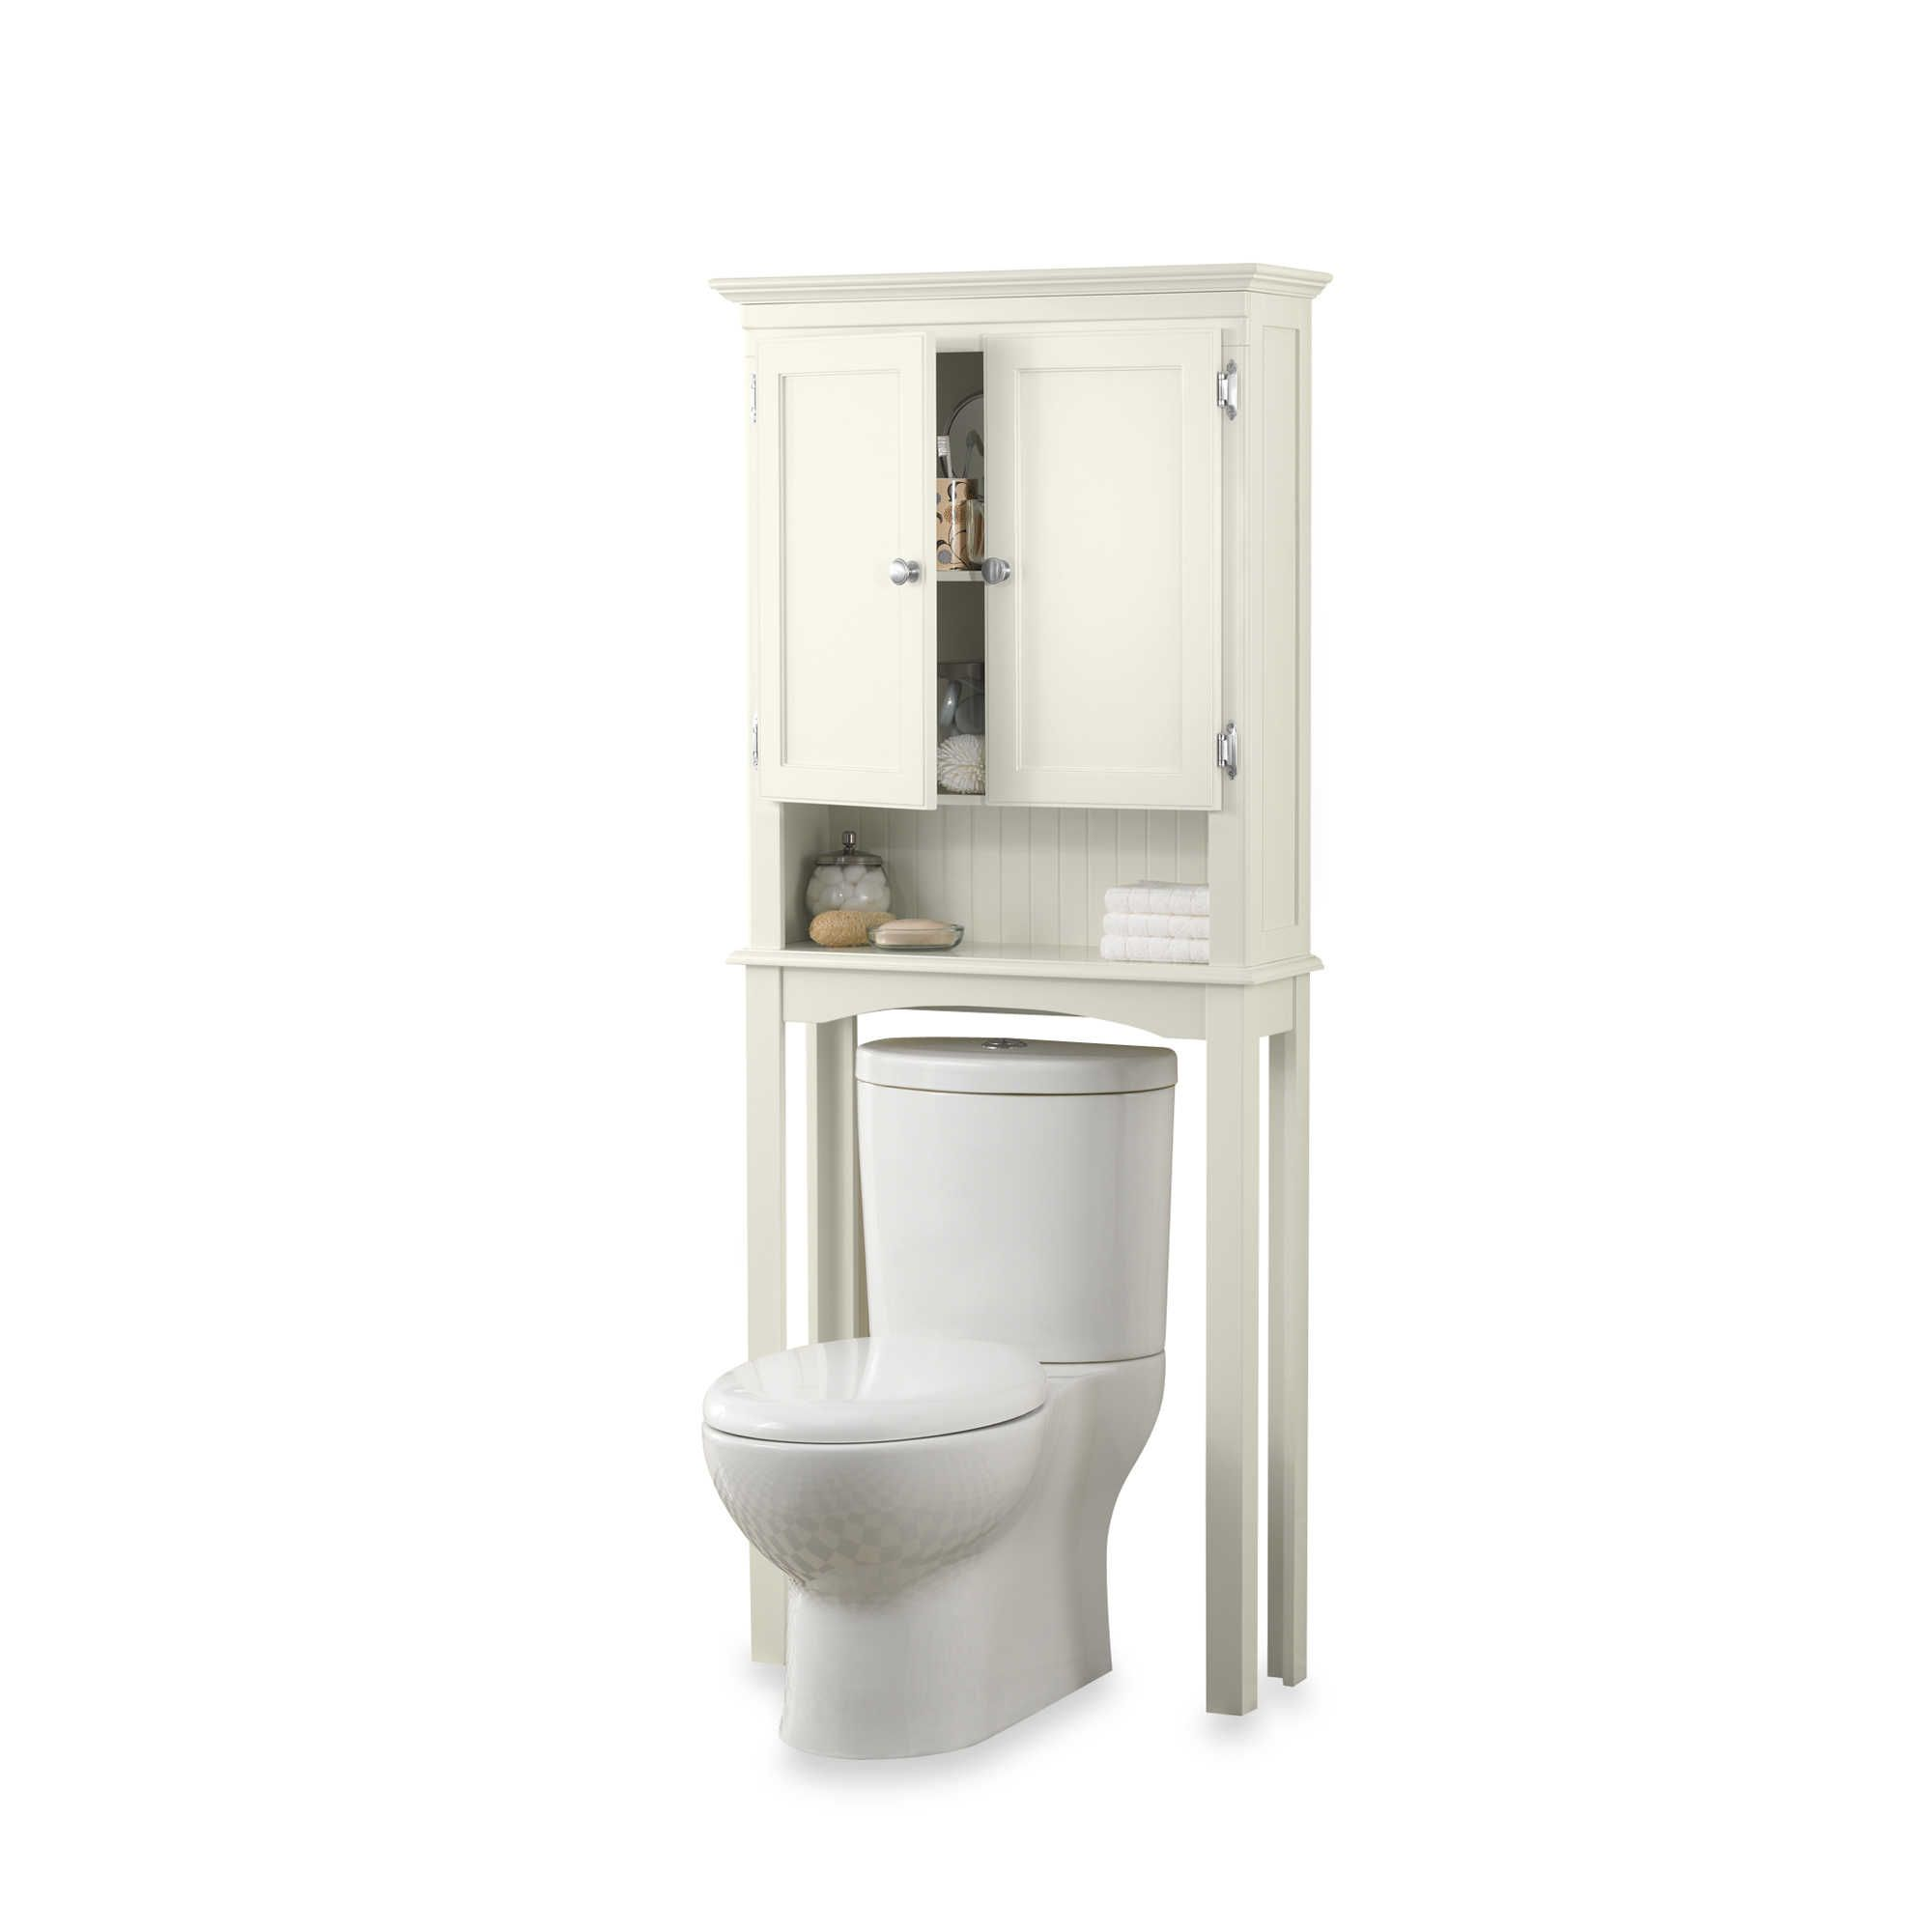 Lovely Fairmont Free Standing Space Saver Cabinet In Ivory. I Want Just A Table  Above The · Bathroom Space SaversWhite ...